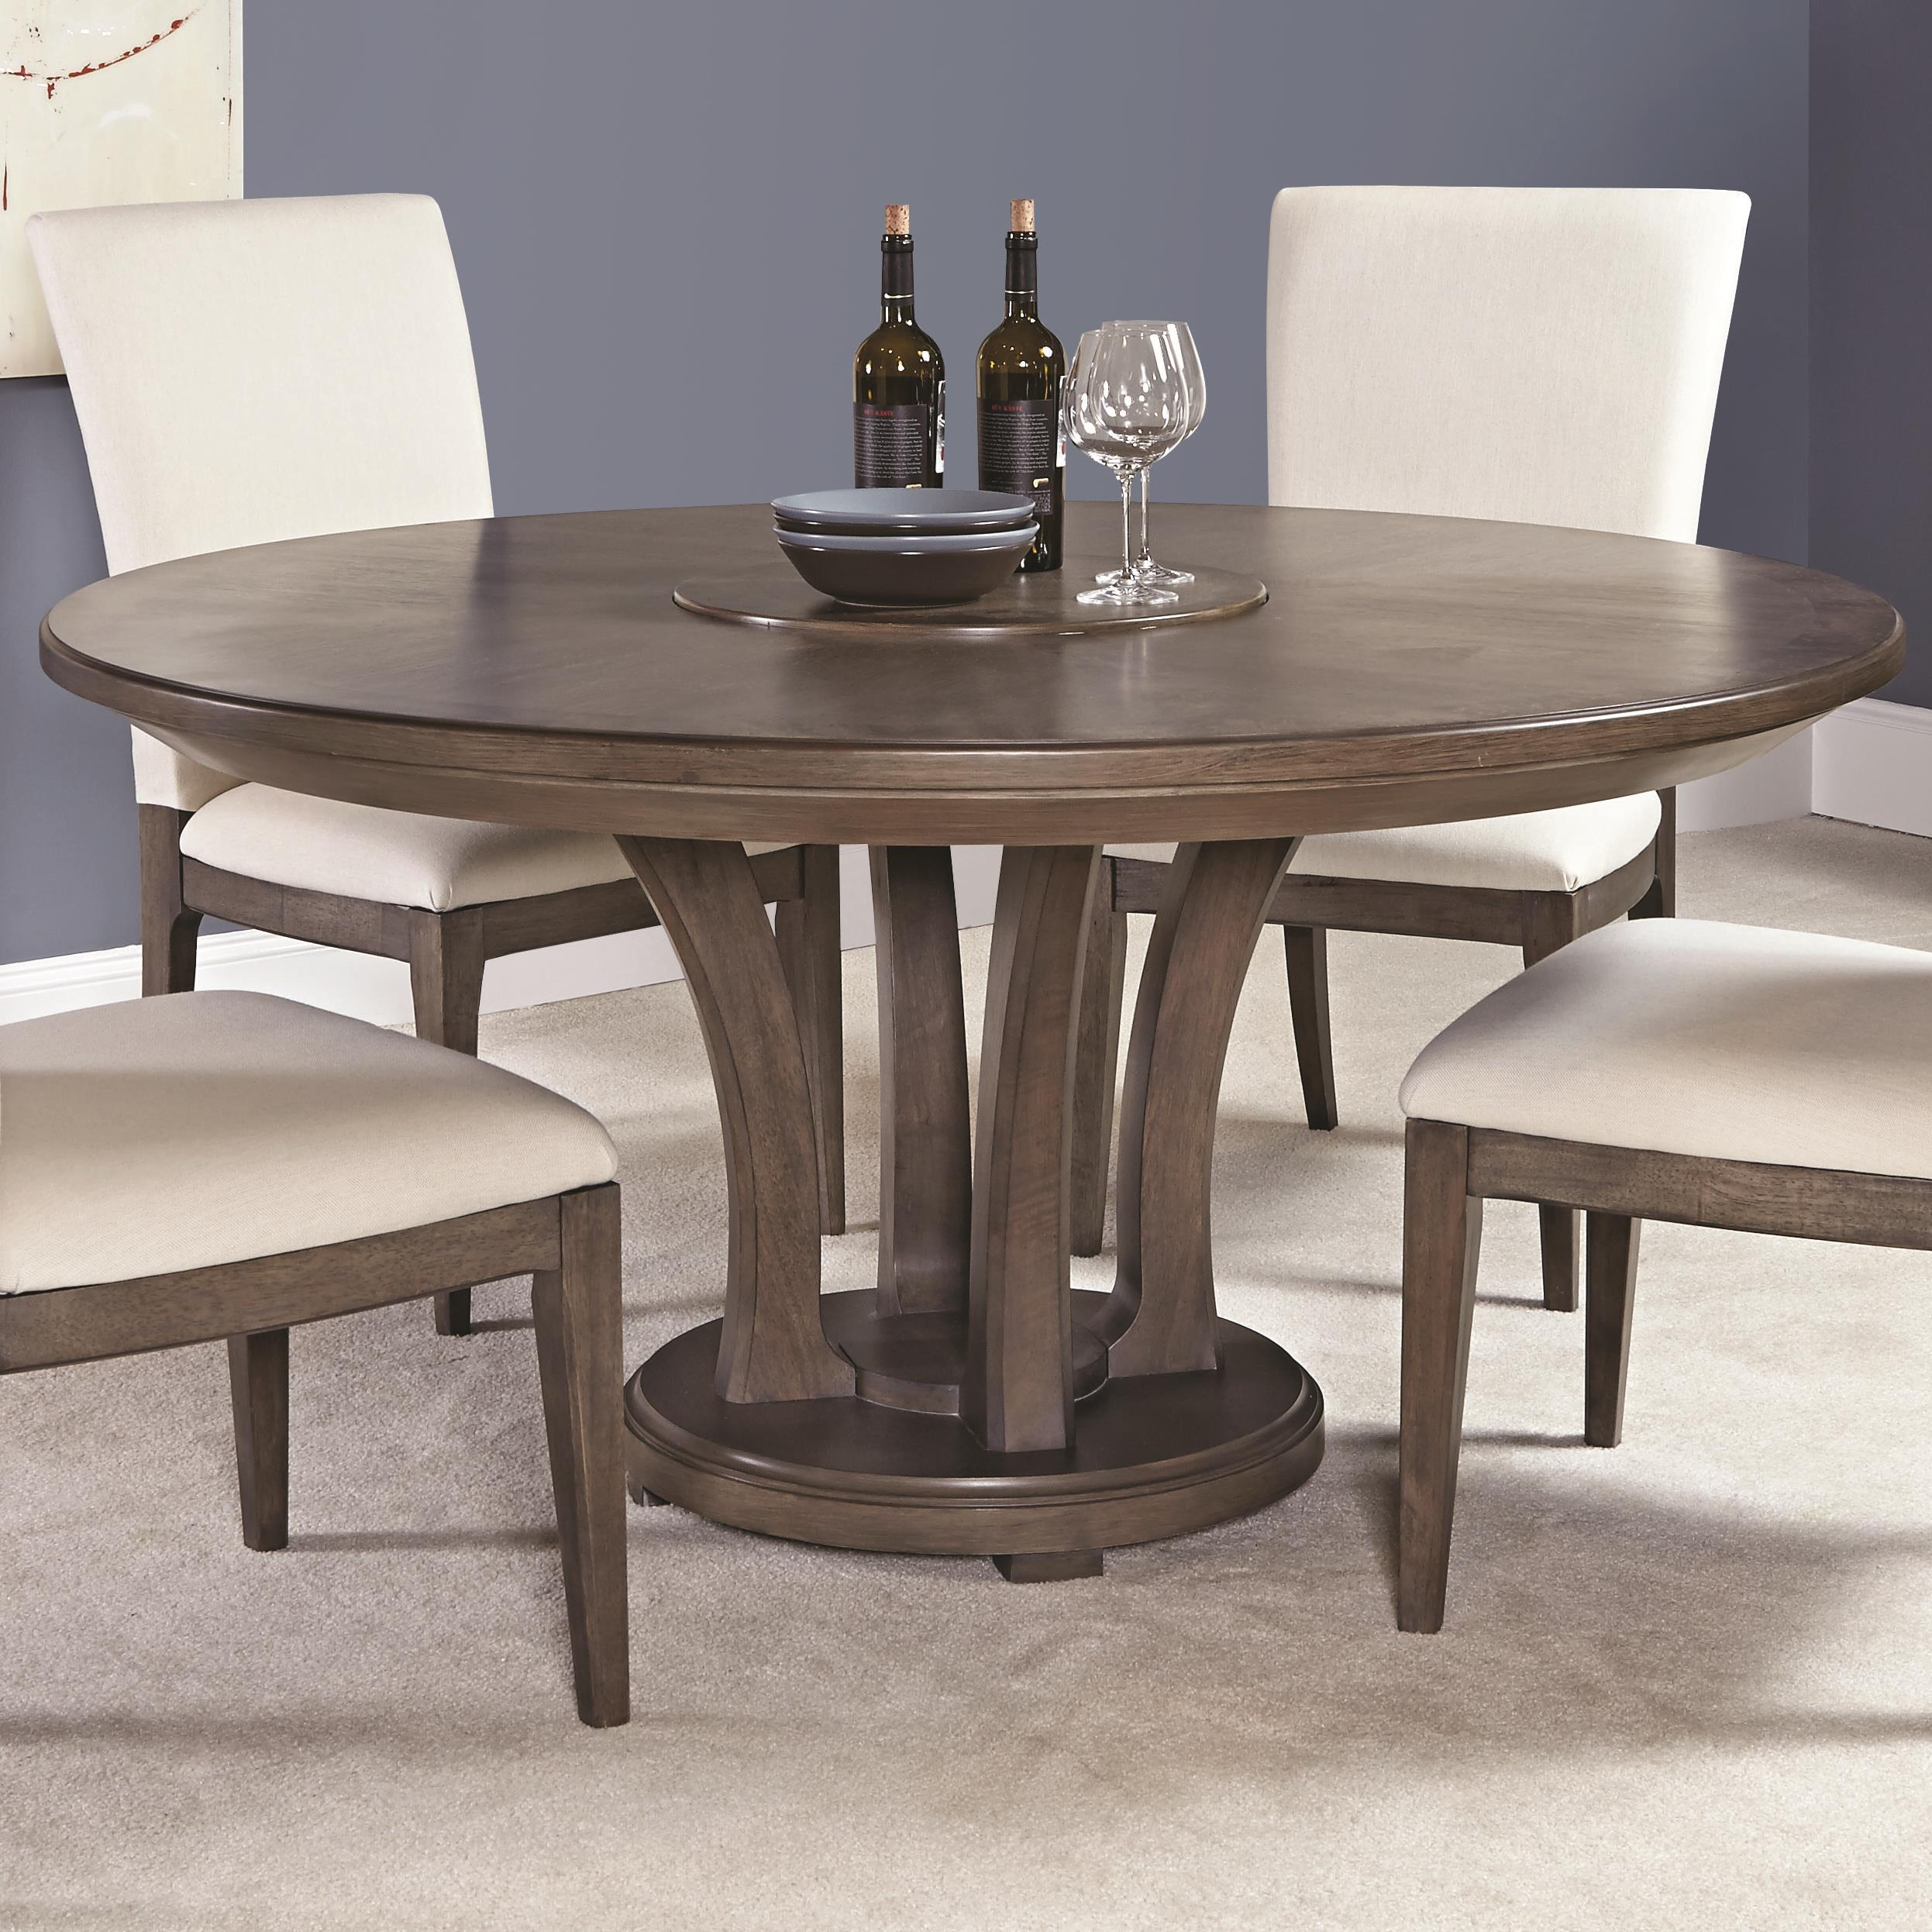 contemporary 62 inch round dining table with trestle base by american drew wolf and gardiner. Black Bedroom Furniture Sets. Home Design Ideas